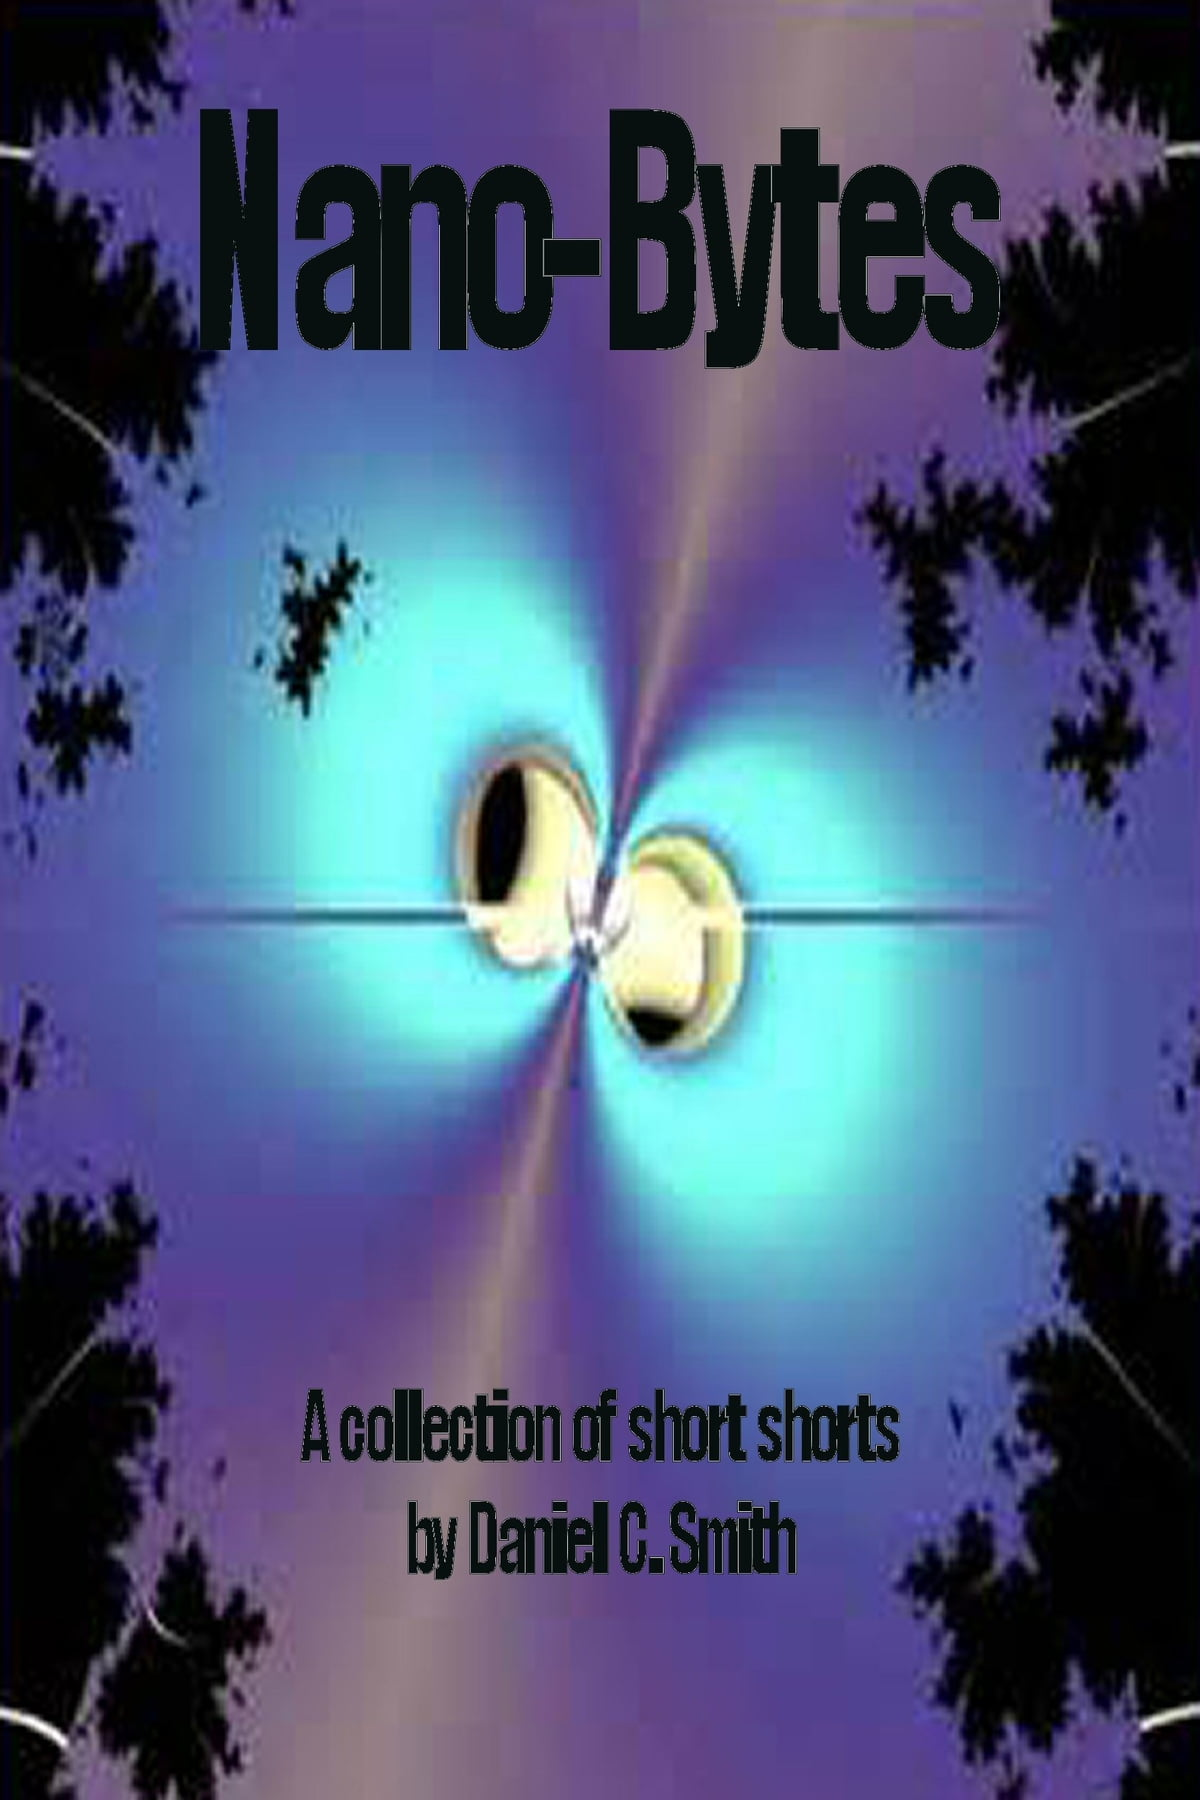 Five Byte Stories